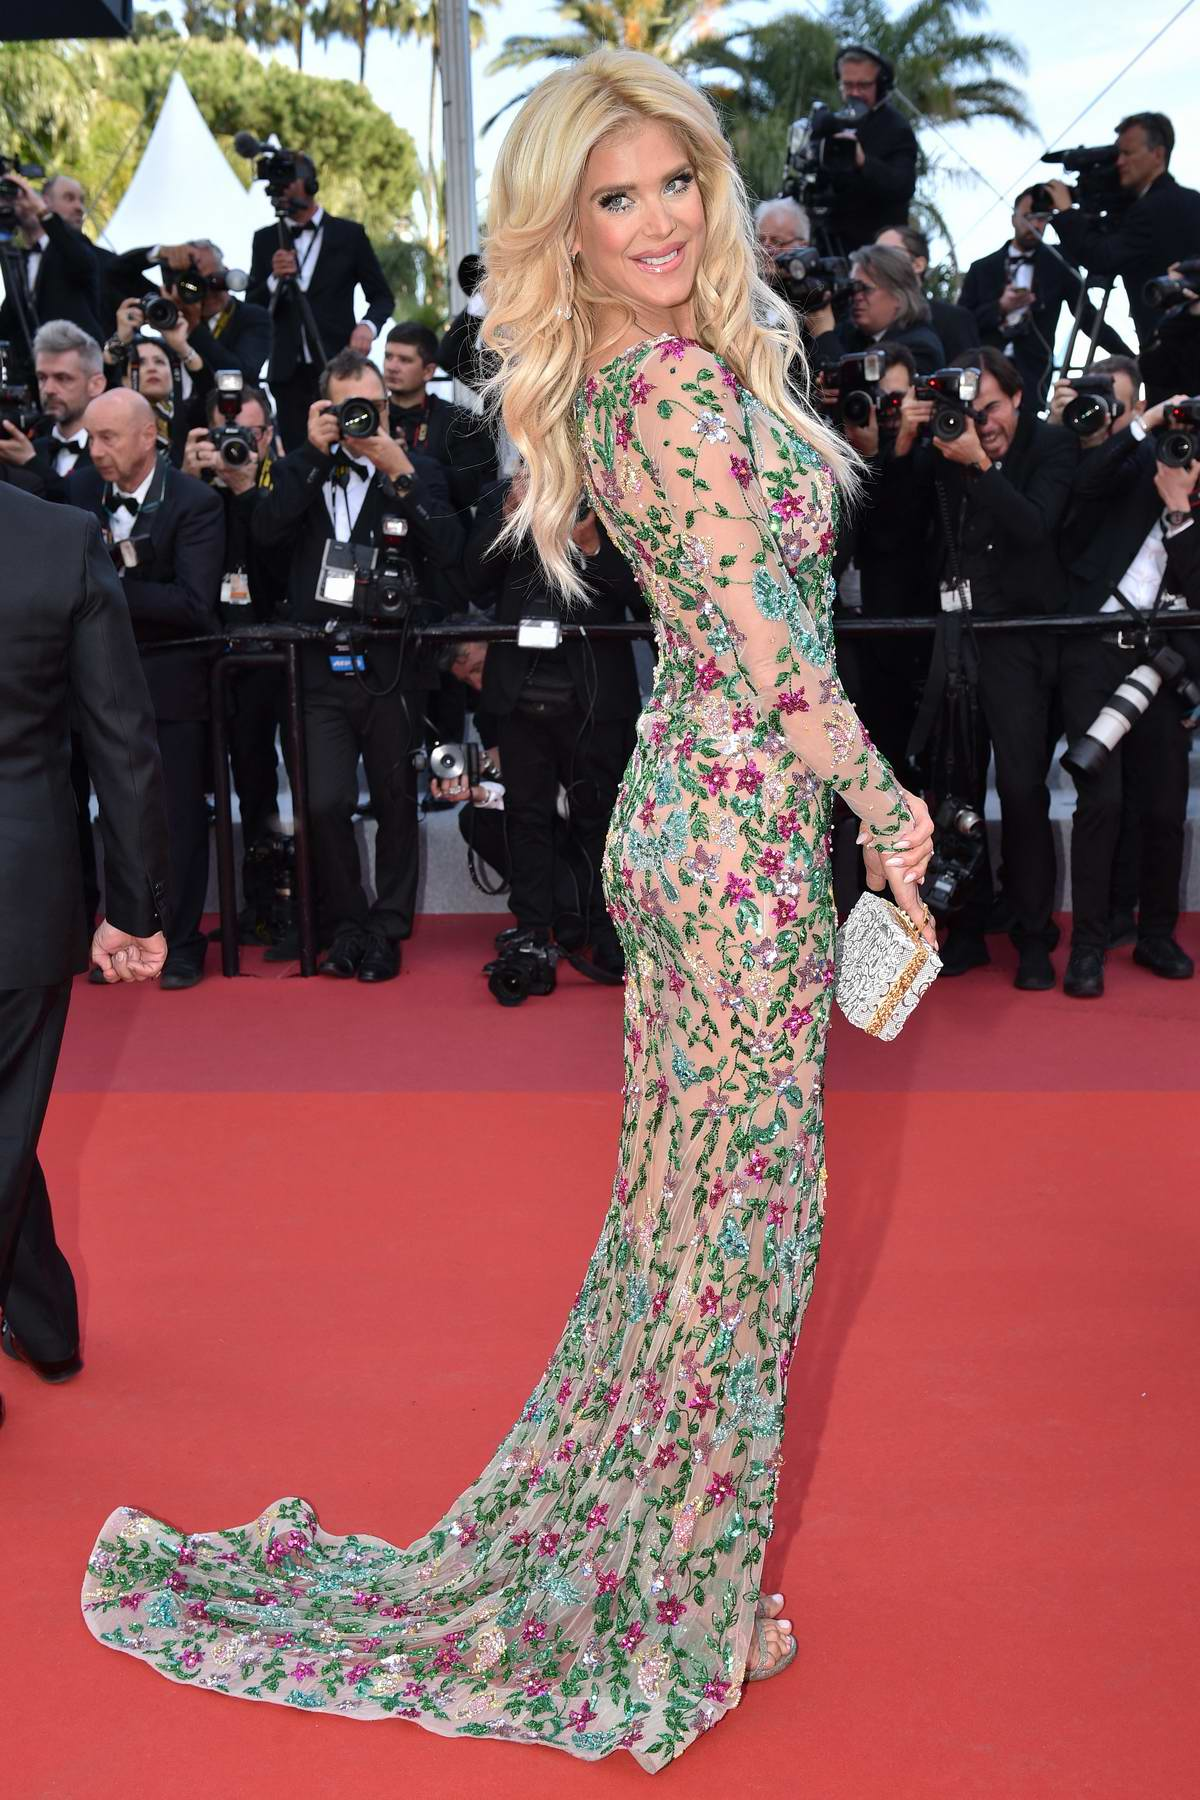 Victoria Silvstedt attends the screening of 'Rocketman' during the 72nd annual Cannes Film Festival in Cannes, France